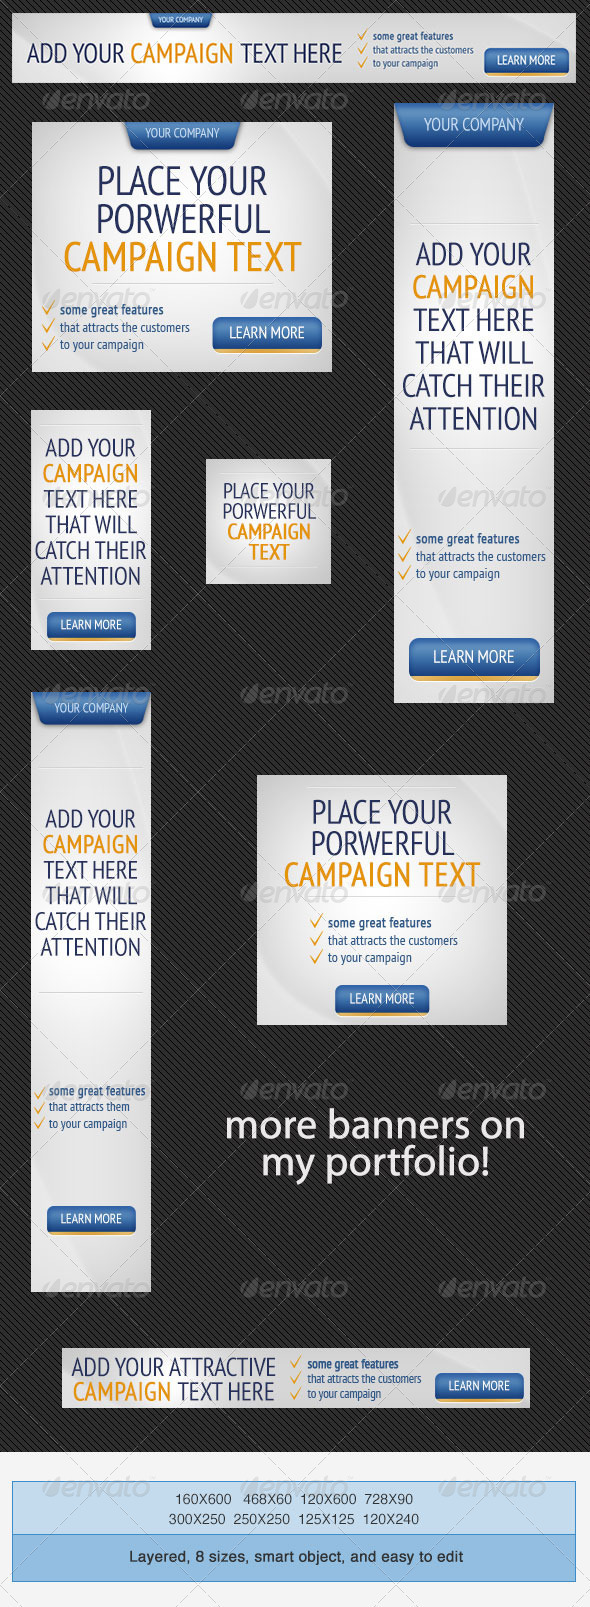 Web Marketing PSD Banner Ad Template - Banners & Ads Web Elements